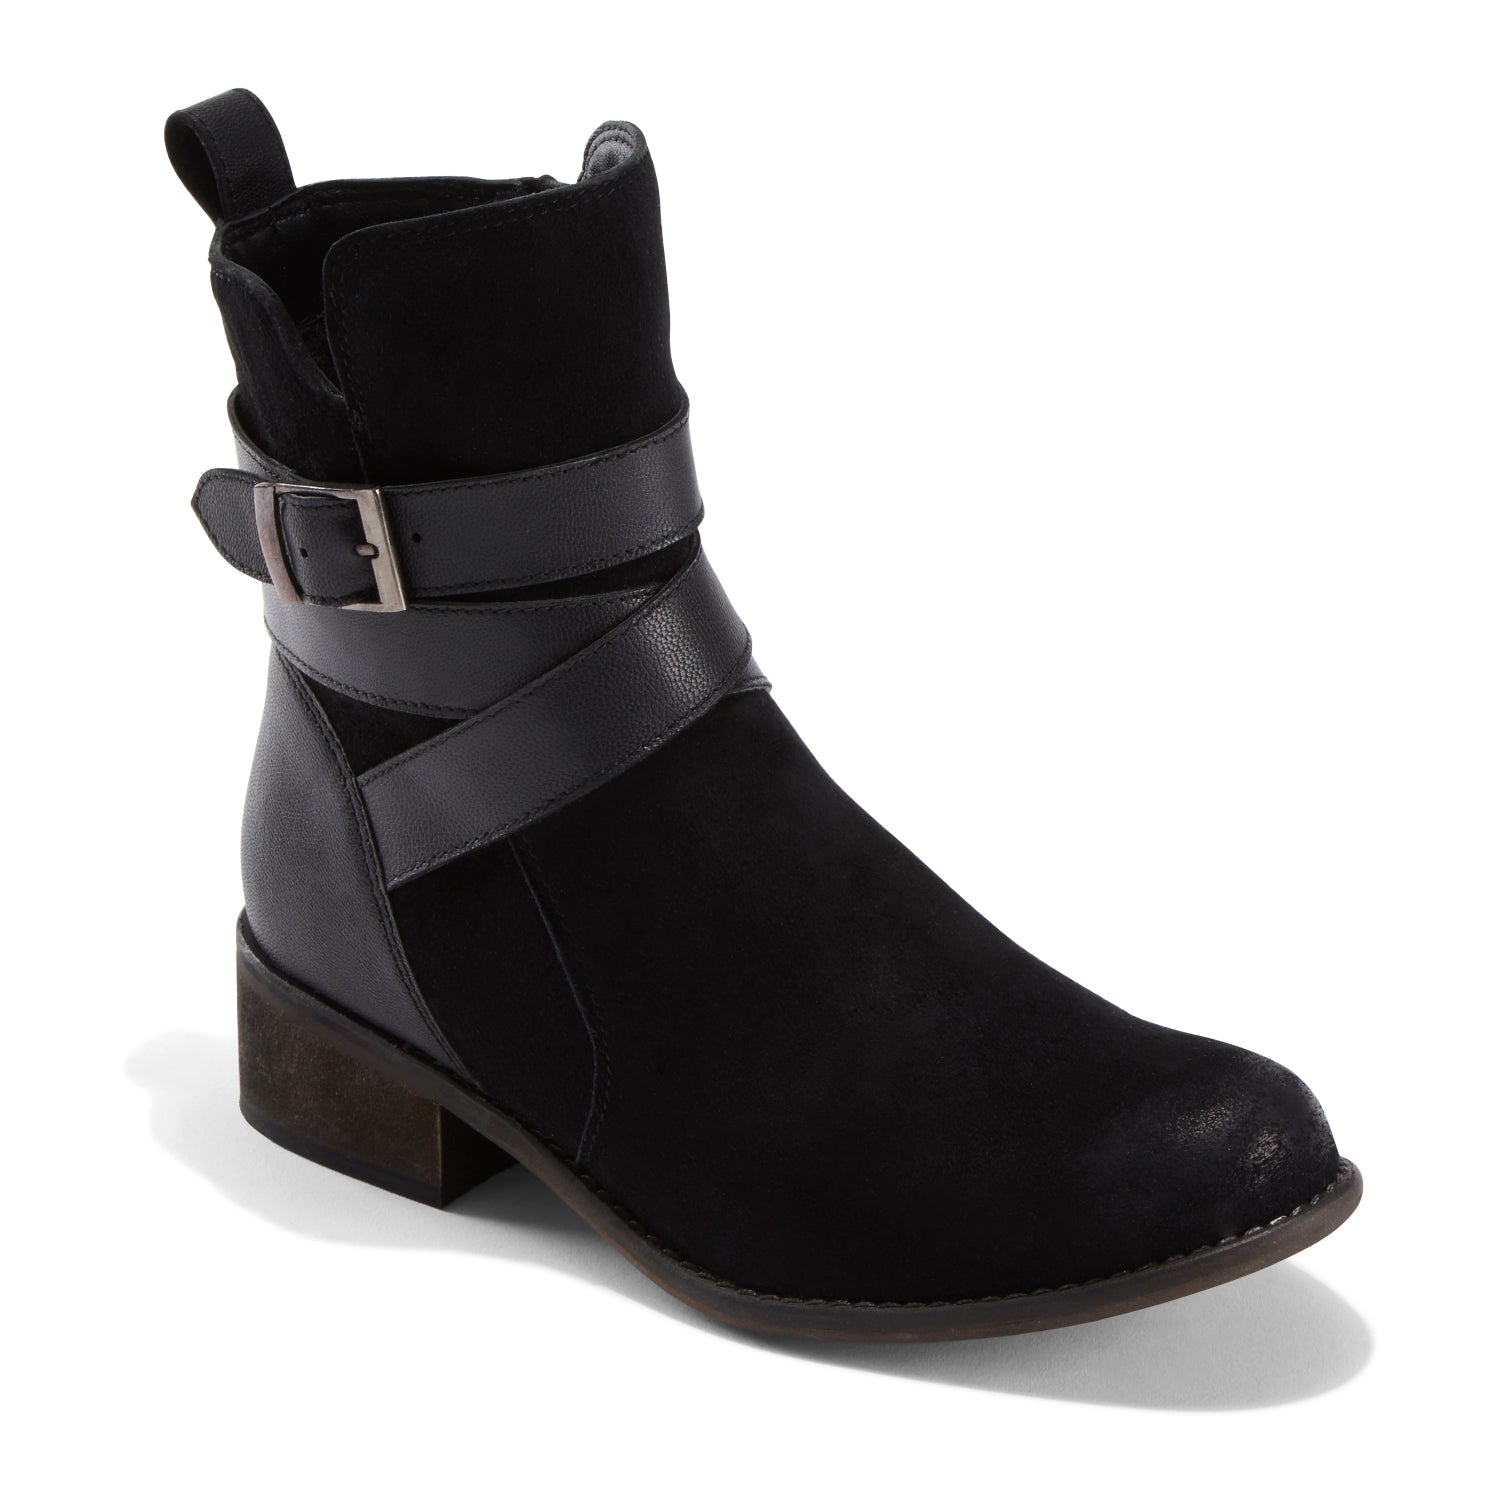 Belted with an elegant swath of premium, smooth leather that complements and contrasts the waxed suede upper, it s a boot that celebrates individuality while never seeming boastful or showy.